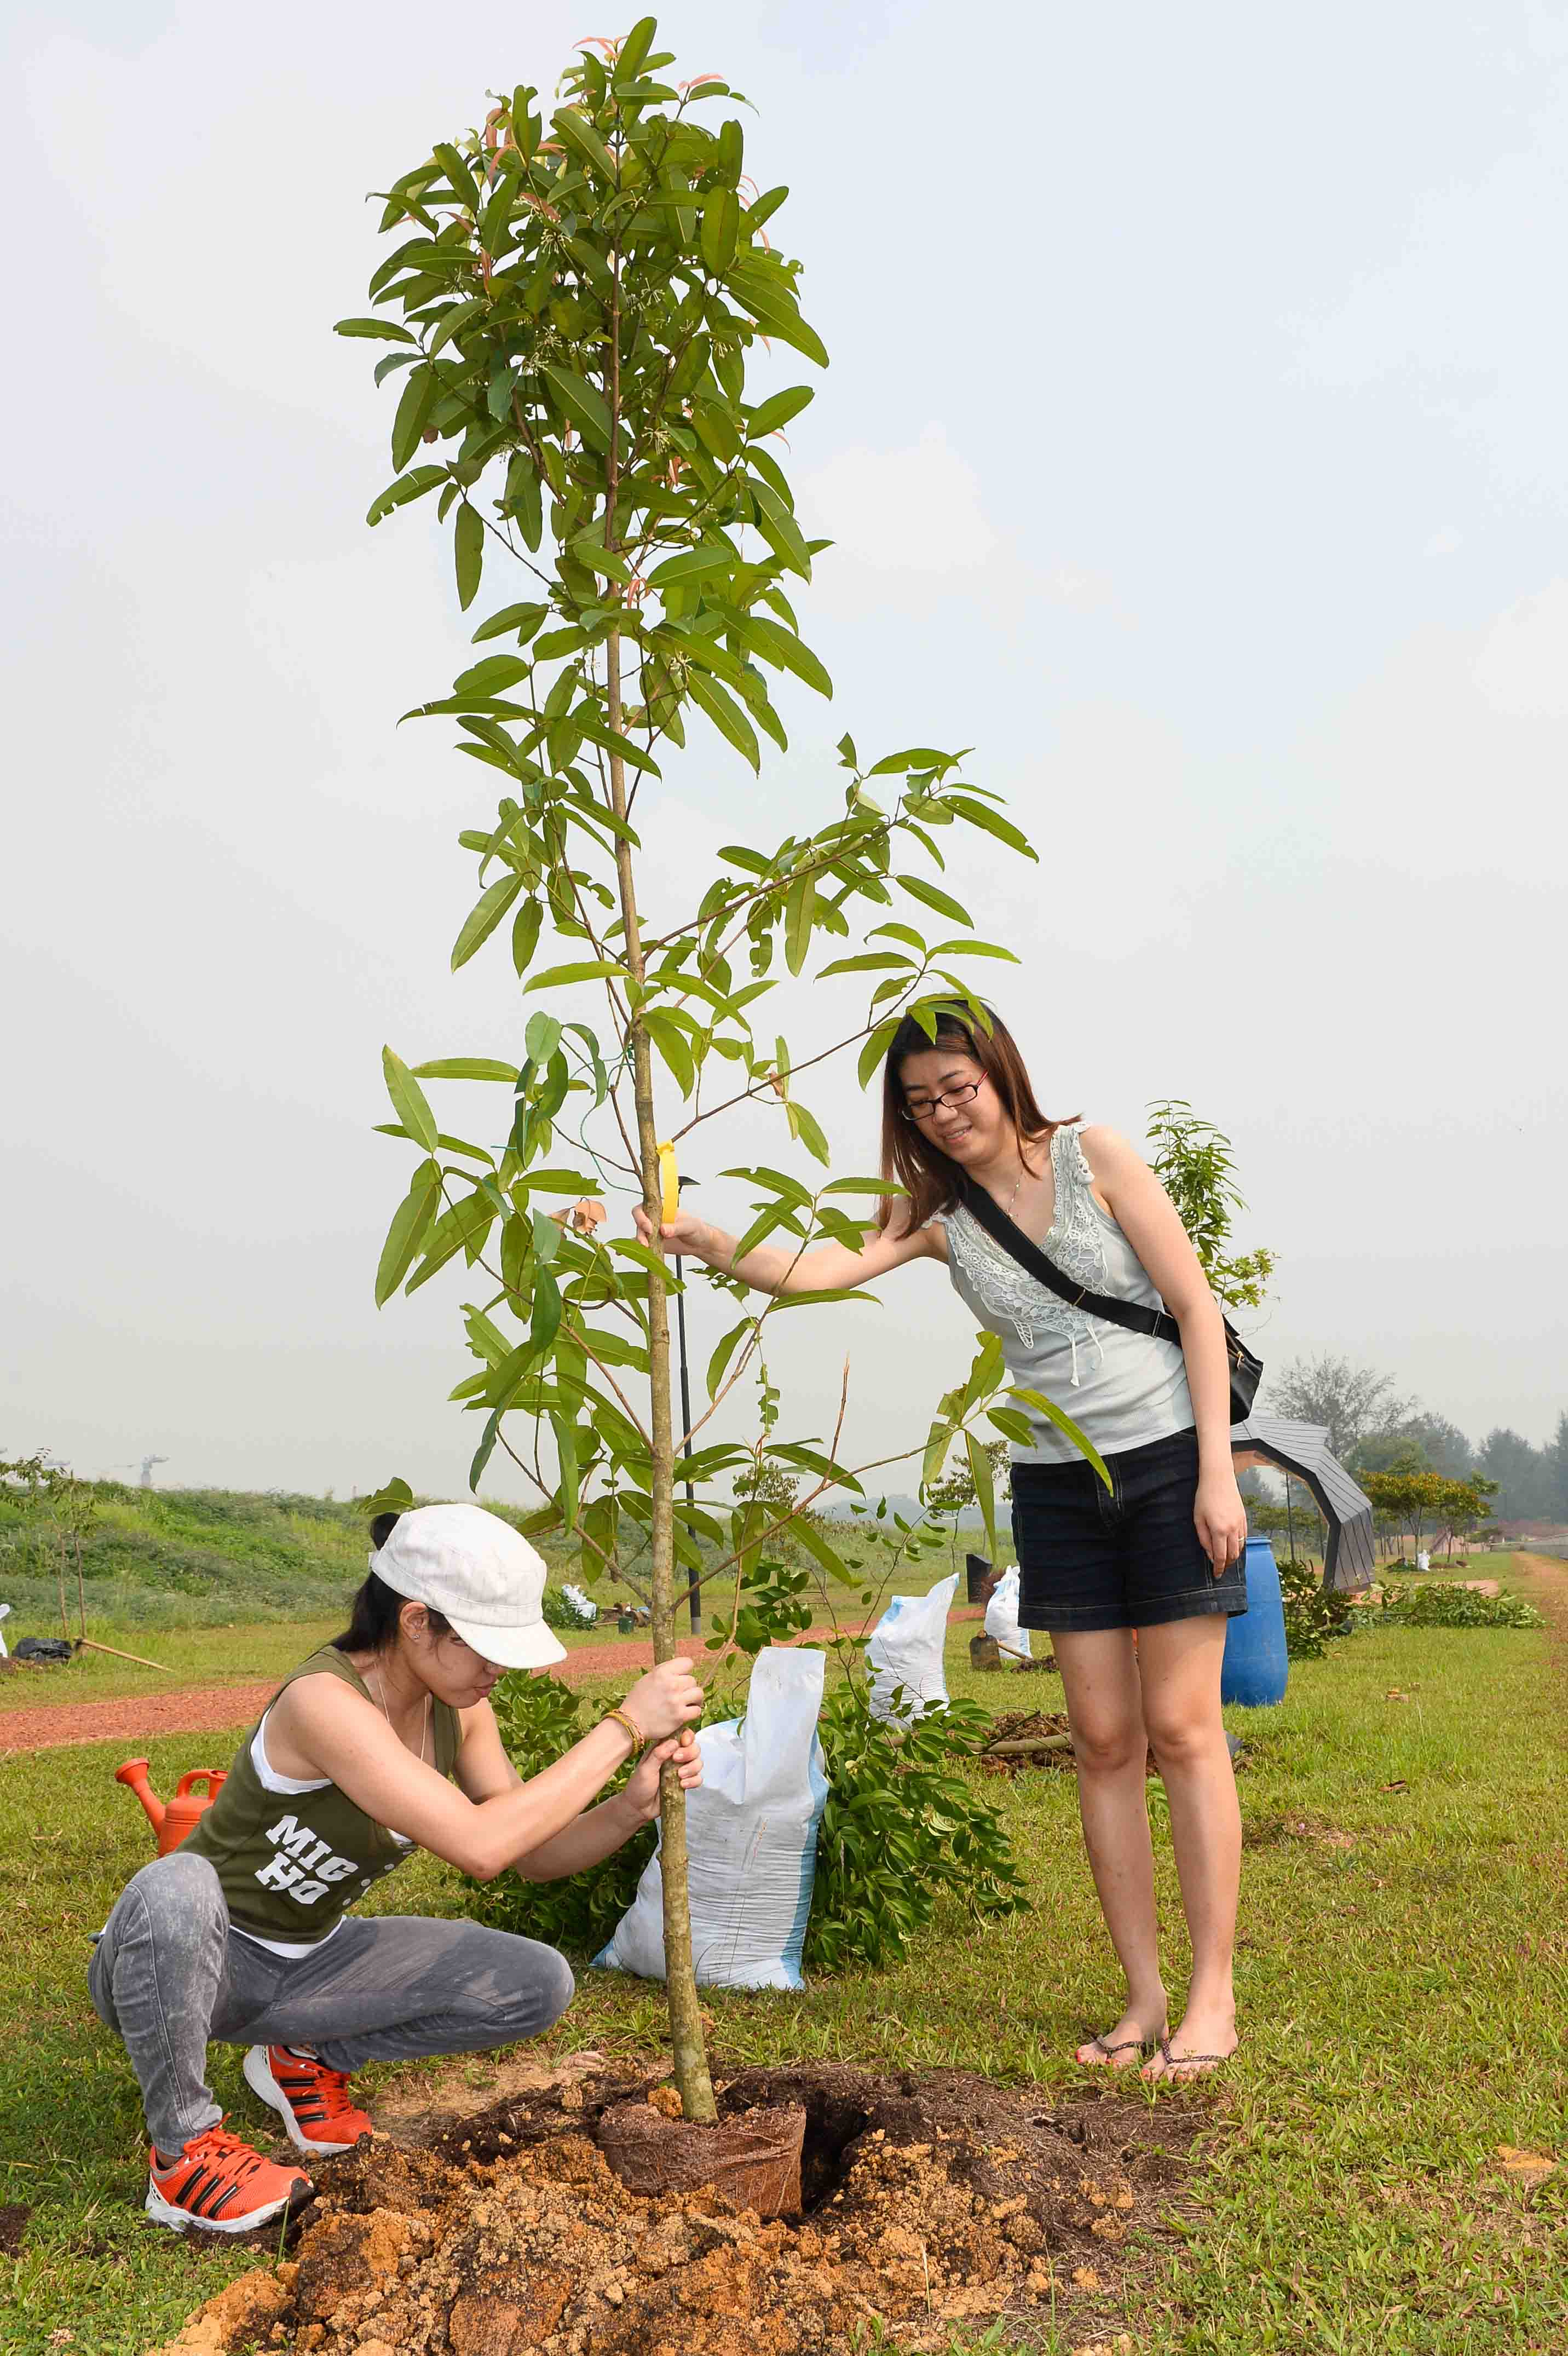 Planting Trees For A Greener Future